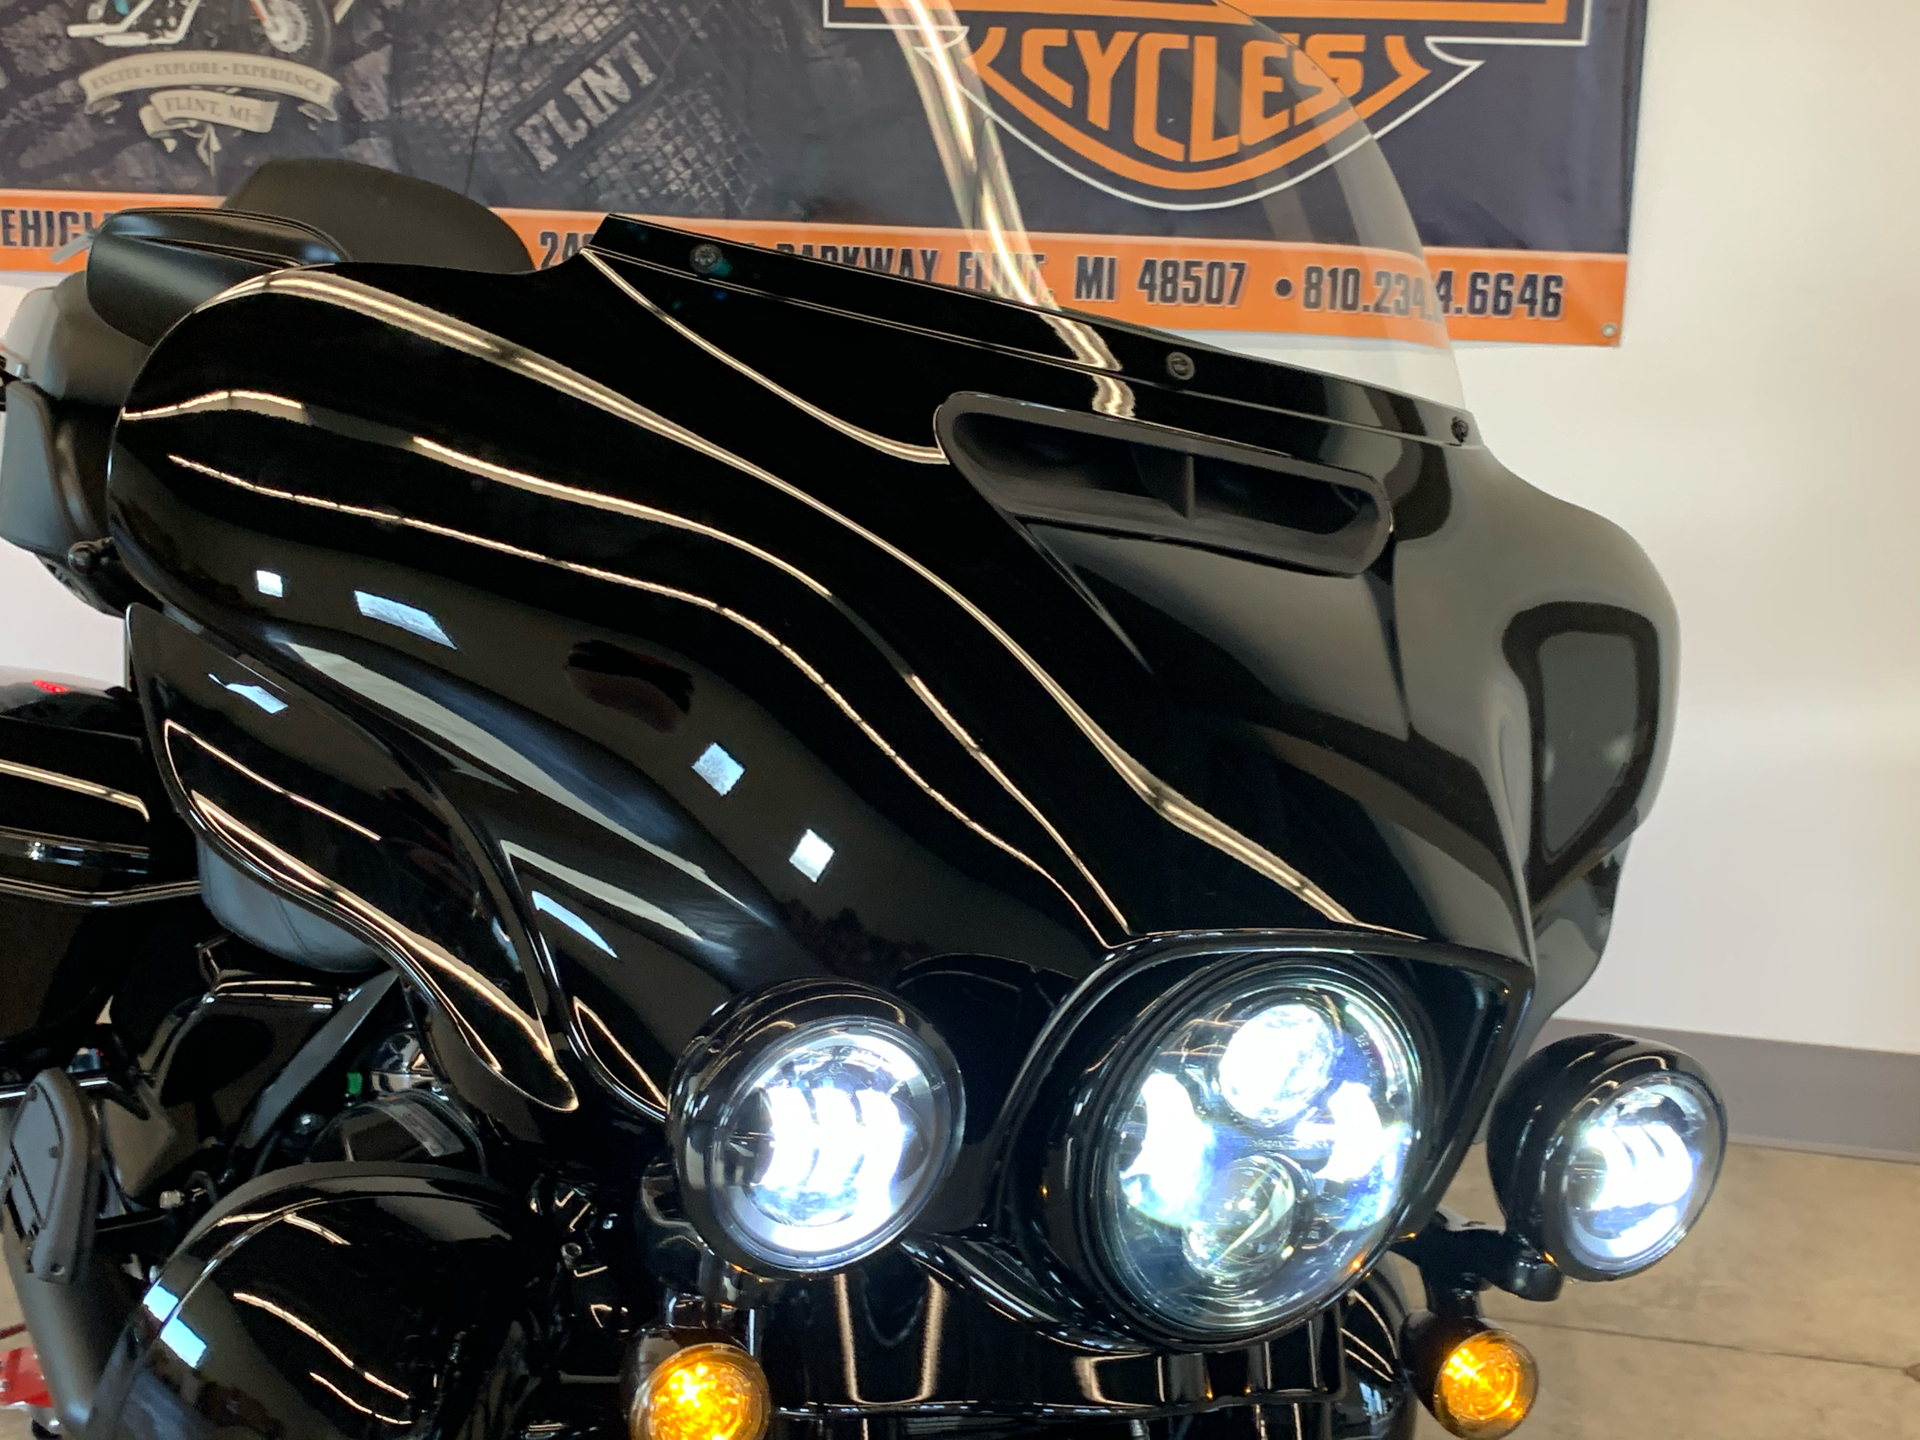 2021 Harley-Davidson ULTRA LIMITED in Flint, Michigan - Photo 12